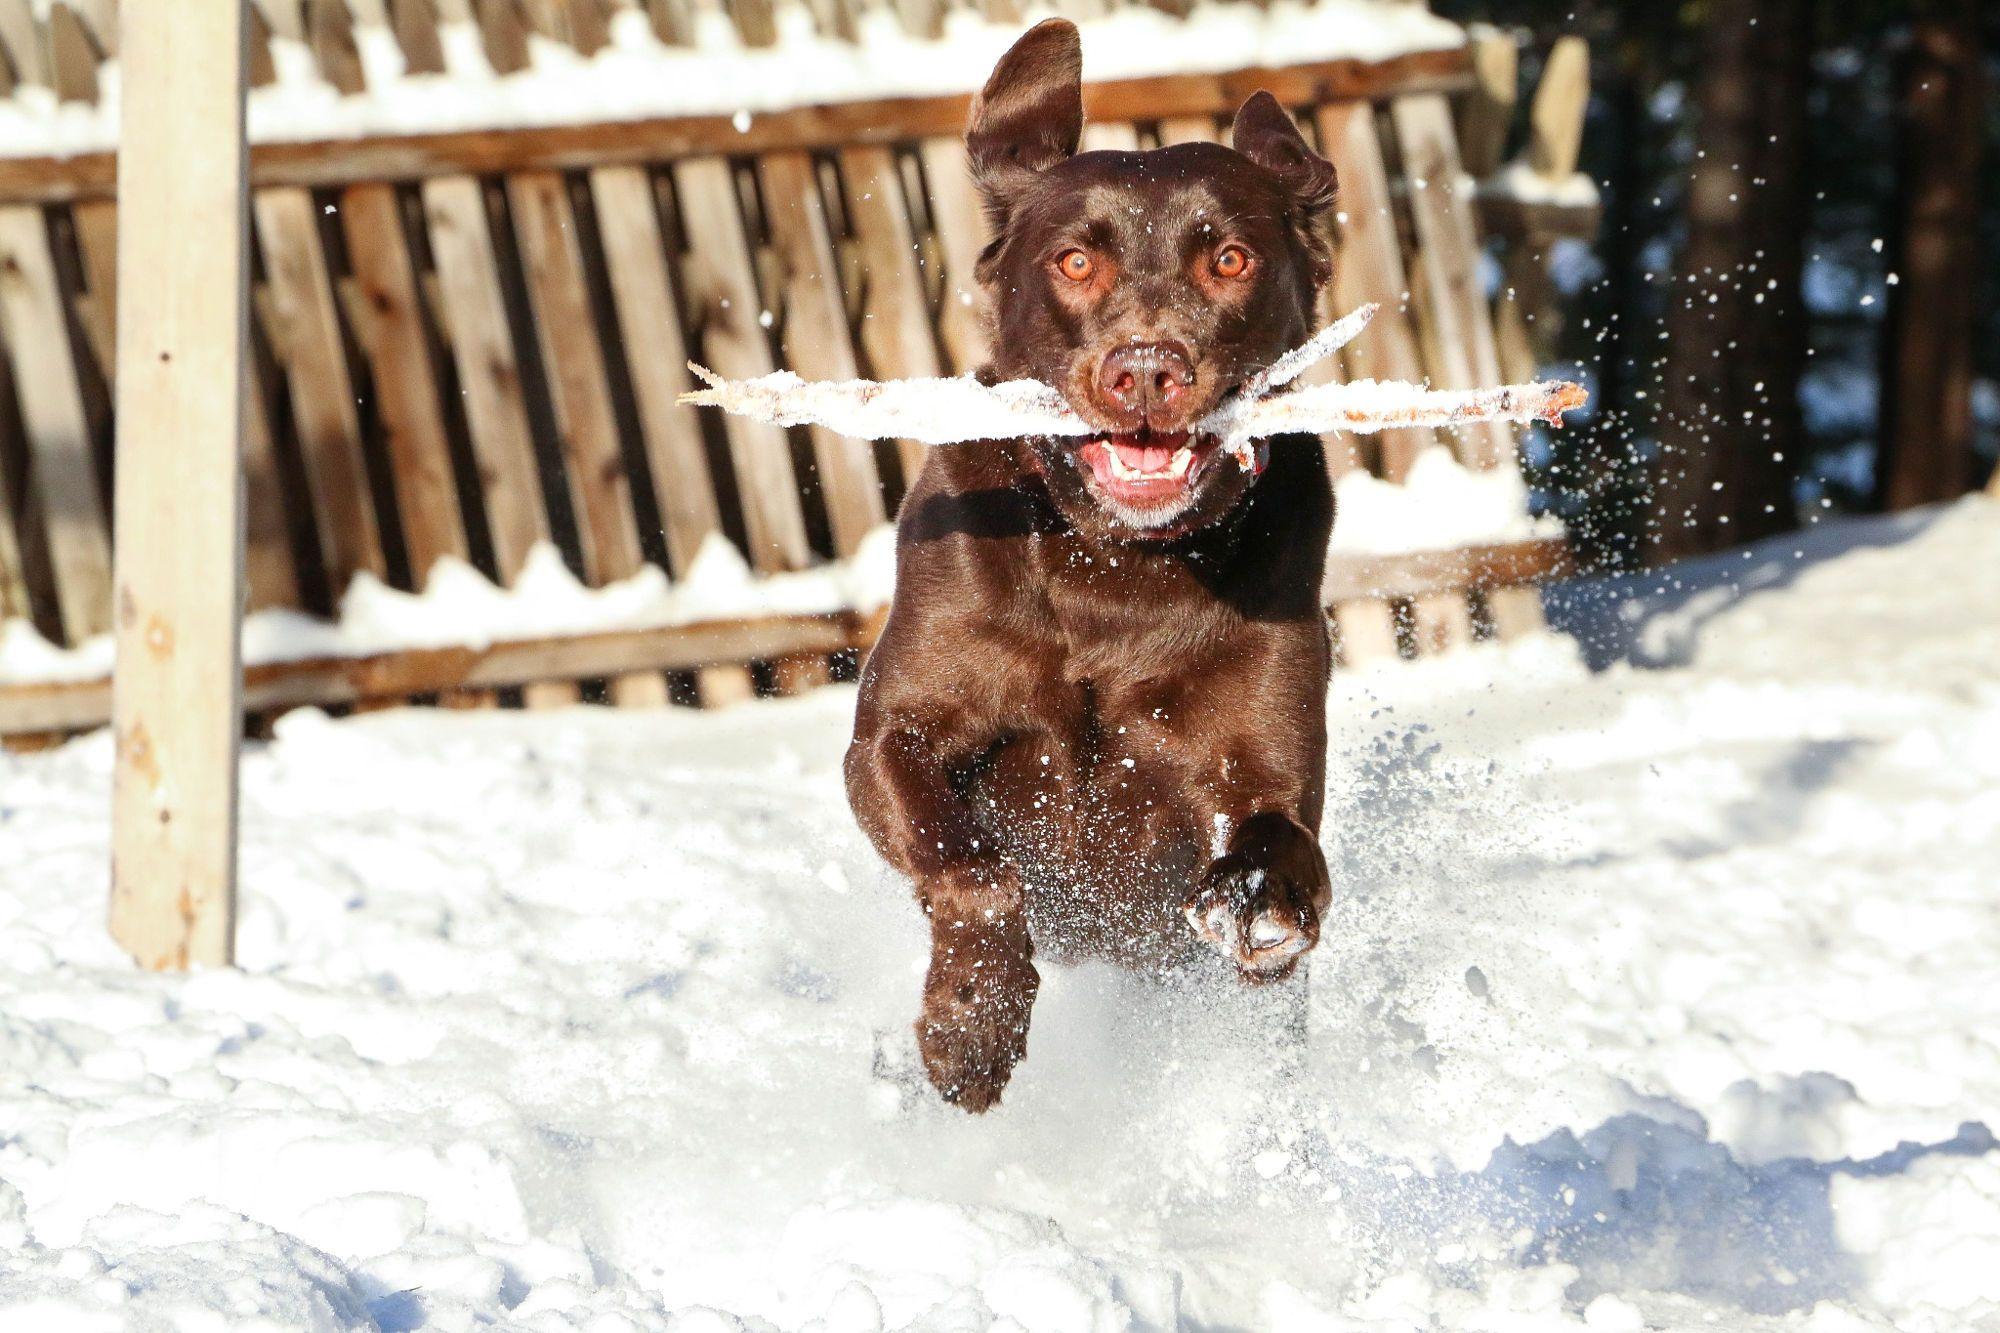 Fetch Chocolate Lab fetching a stick in the snow.